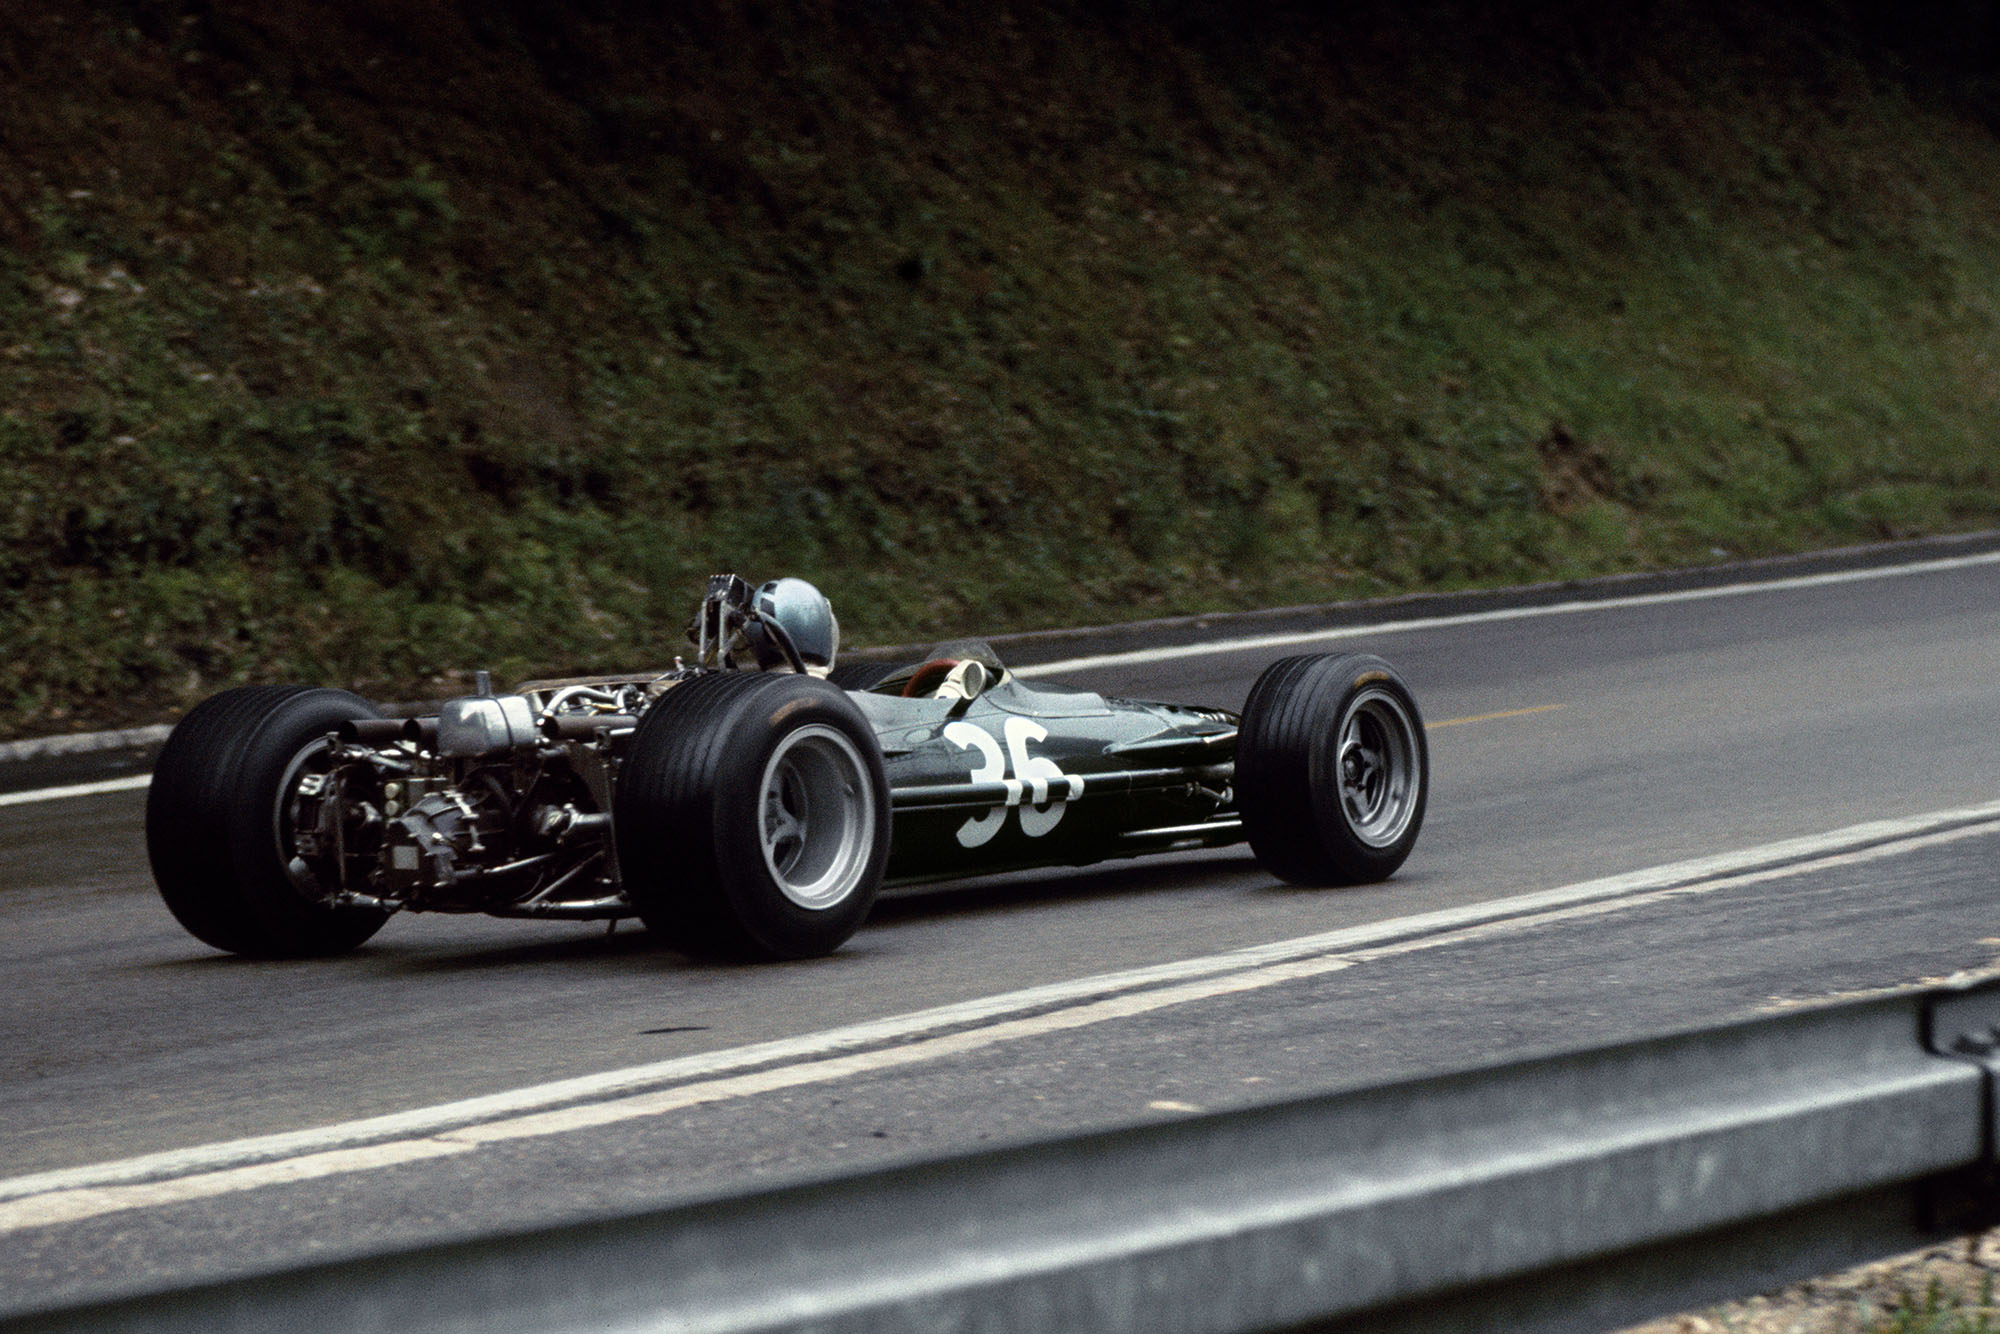 Piers Courage (BRM P126-BRM), 6th position, action.